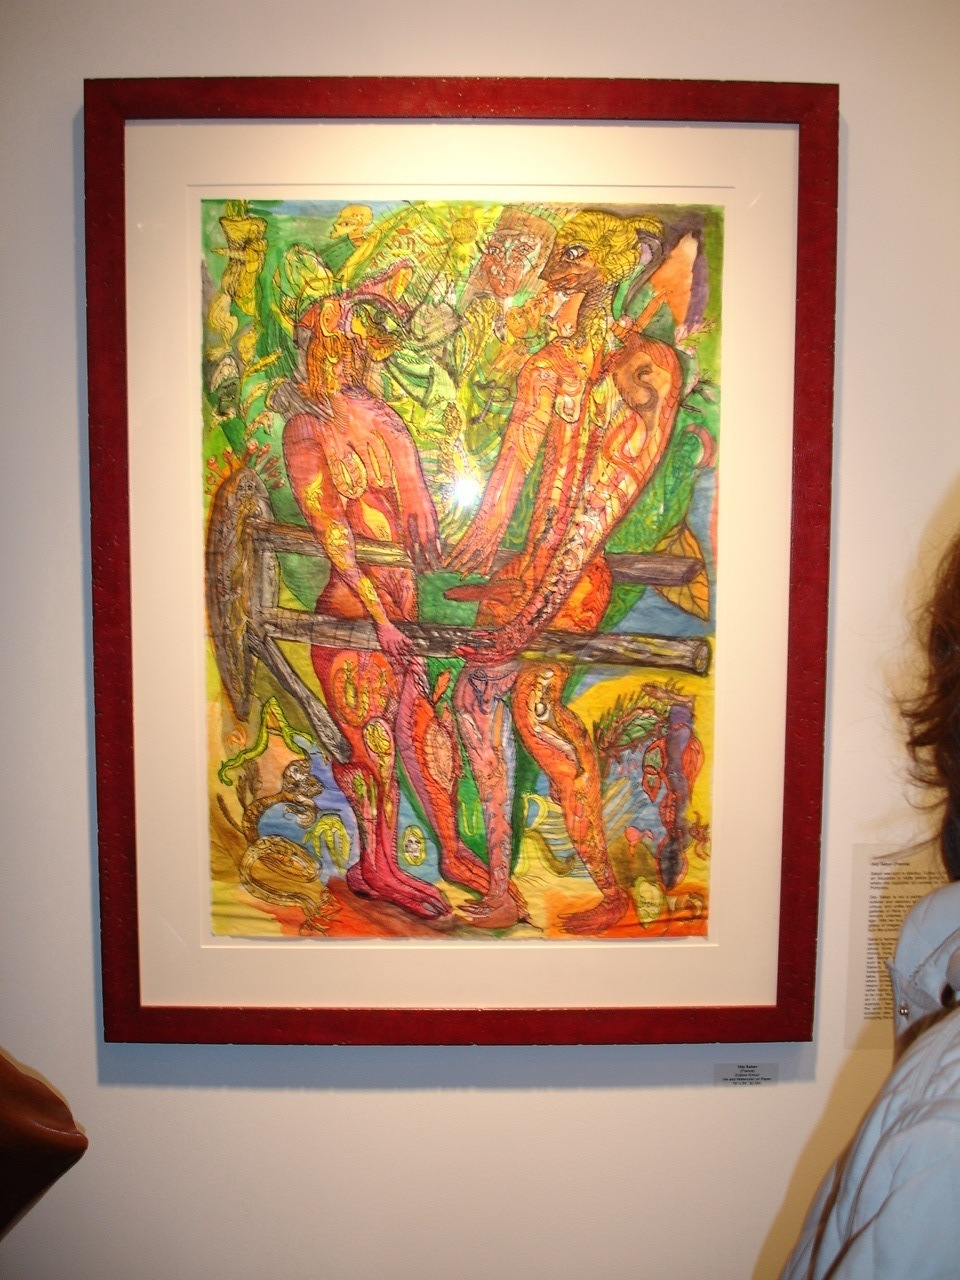 ody-saban-collection-of-jerry-dale-mcfadden-at-tag-gallery-igs-2007-nashville-tennessee_400477783_o.jpg